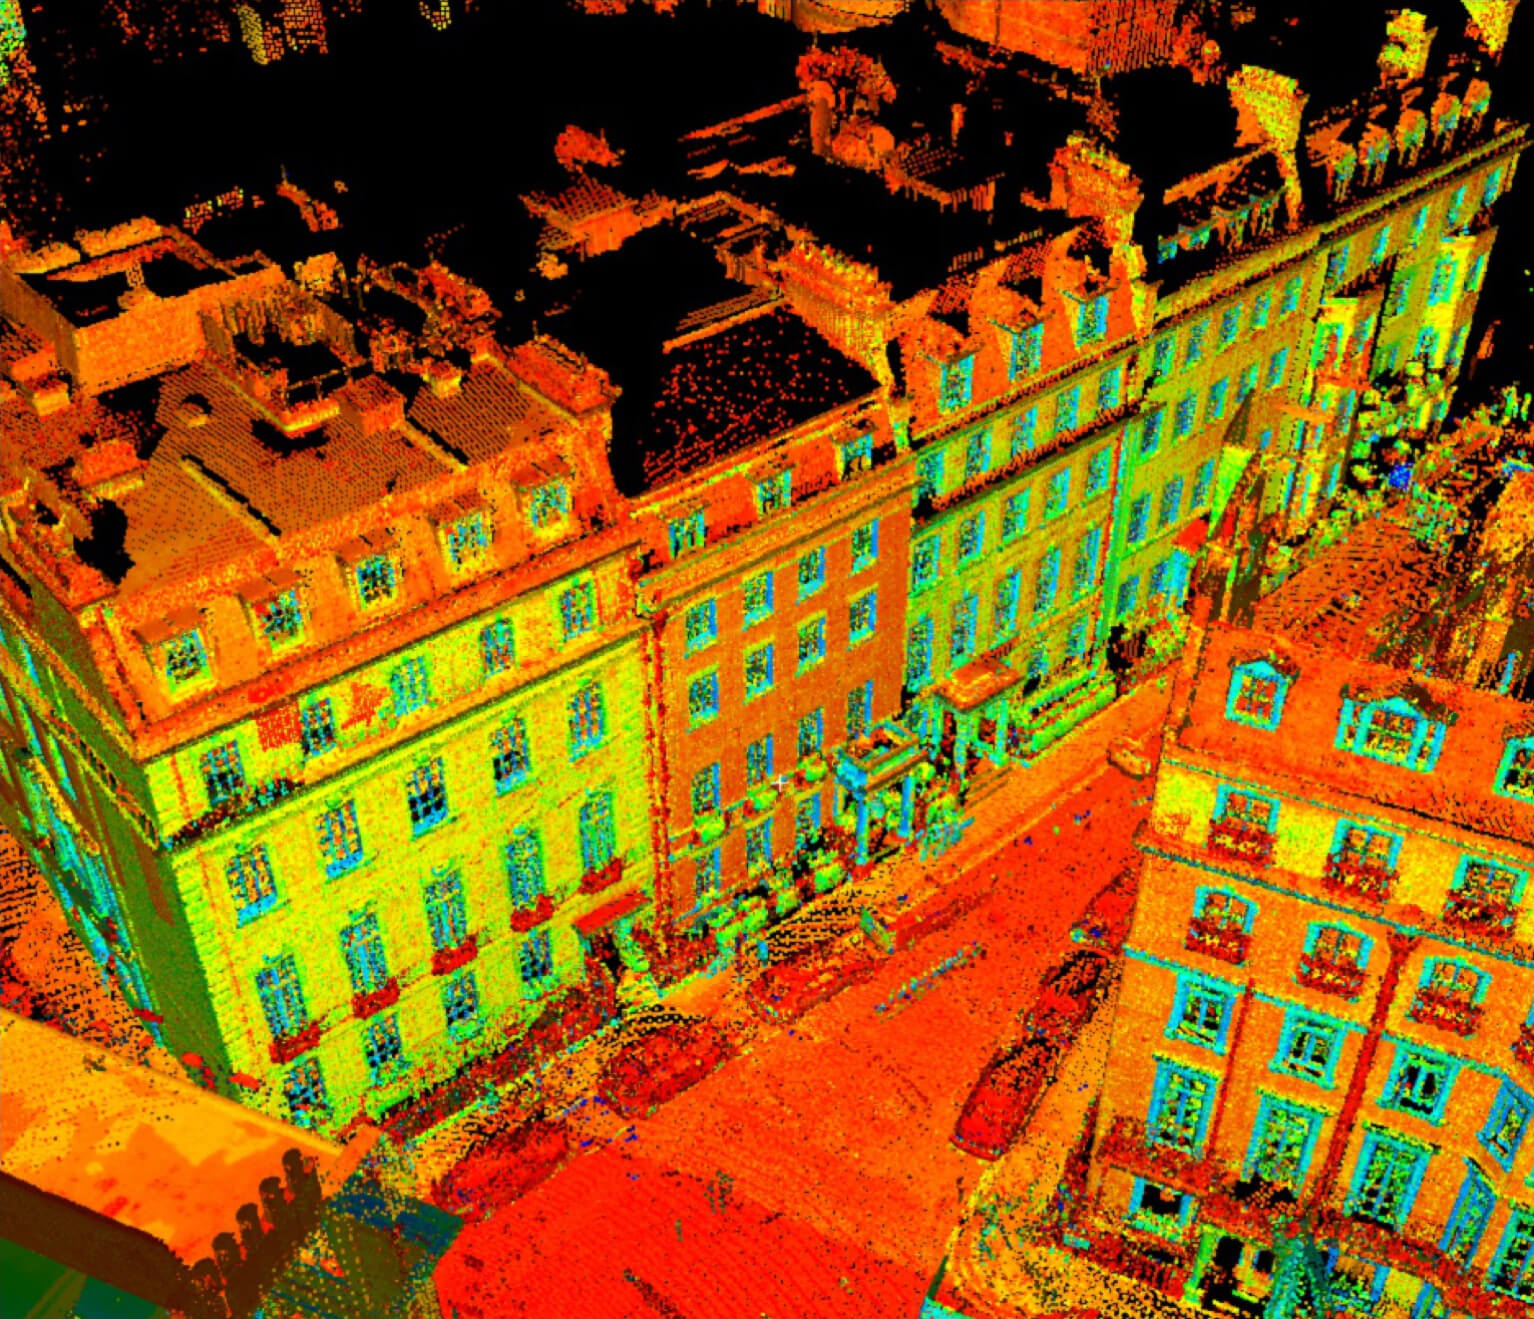 above scan of buildings.